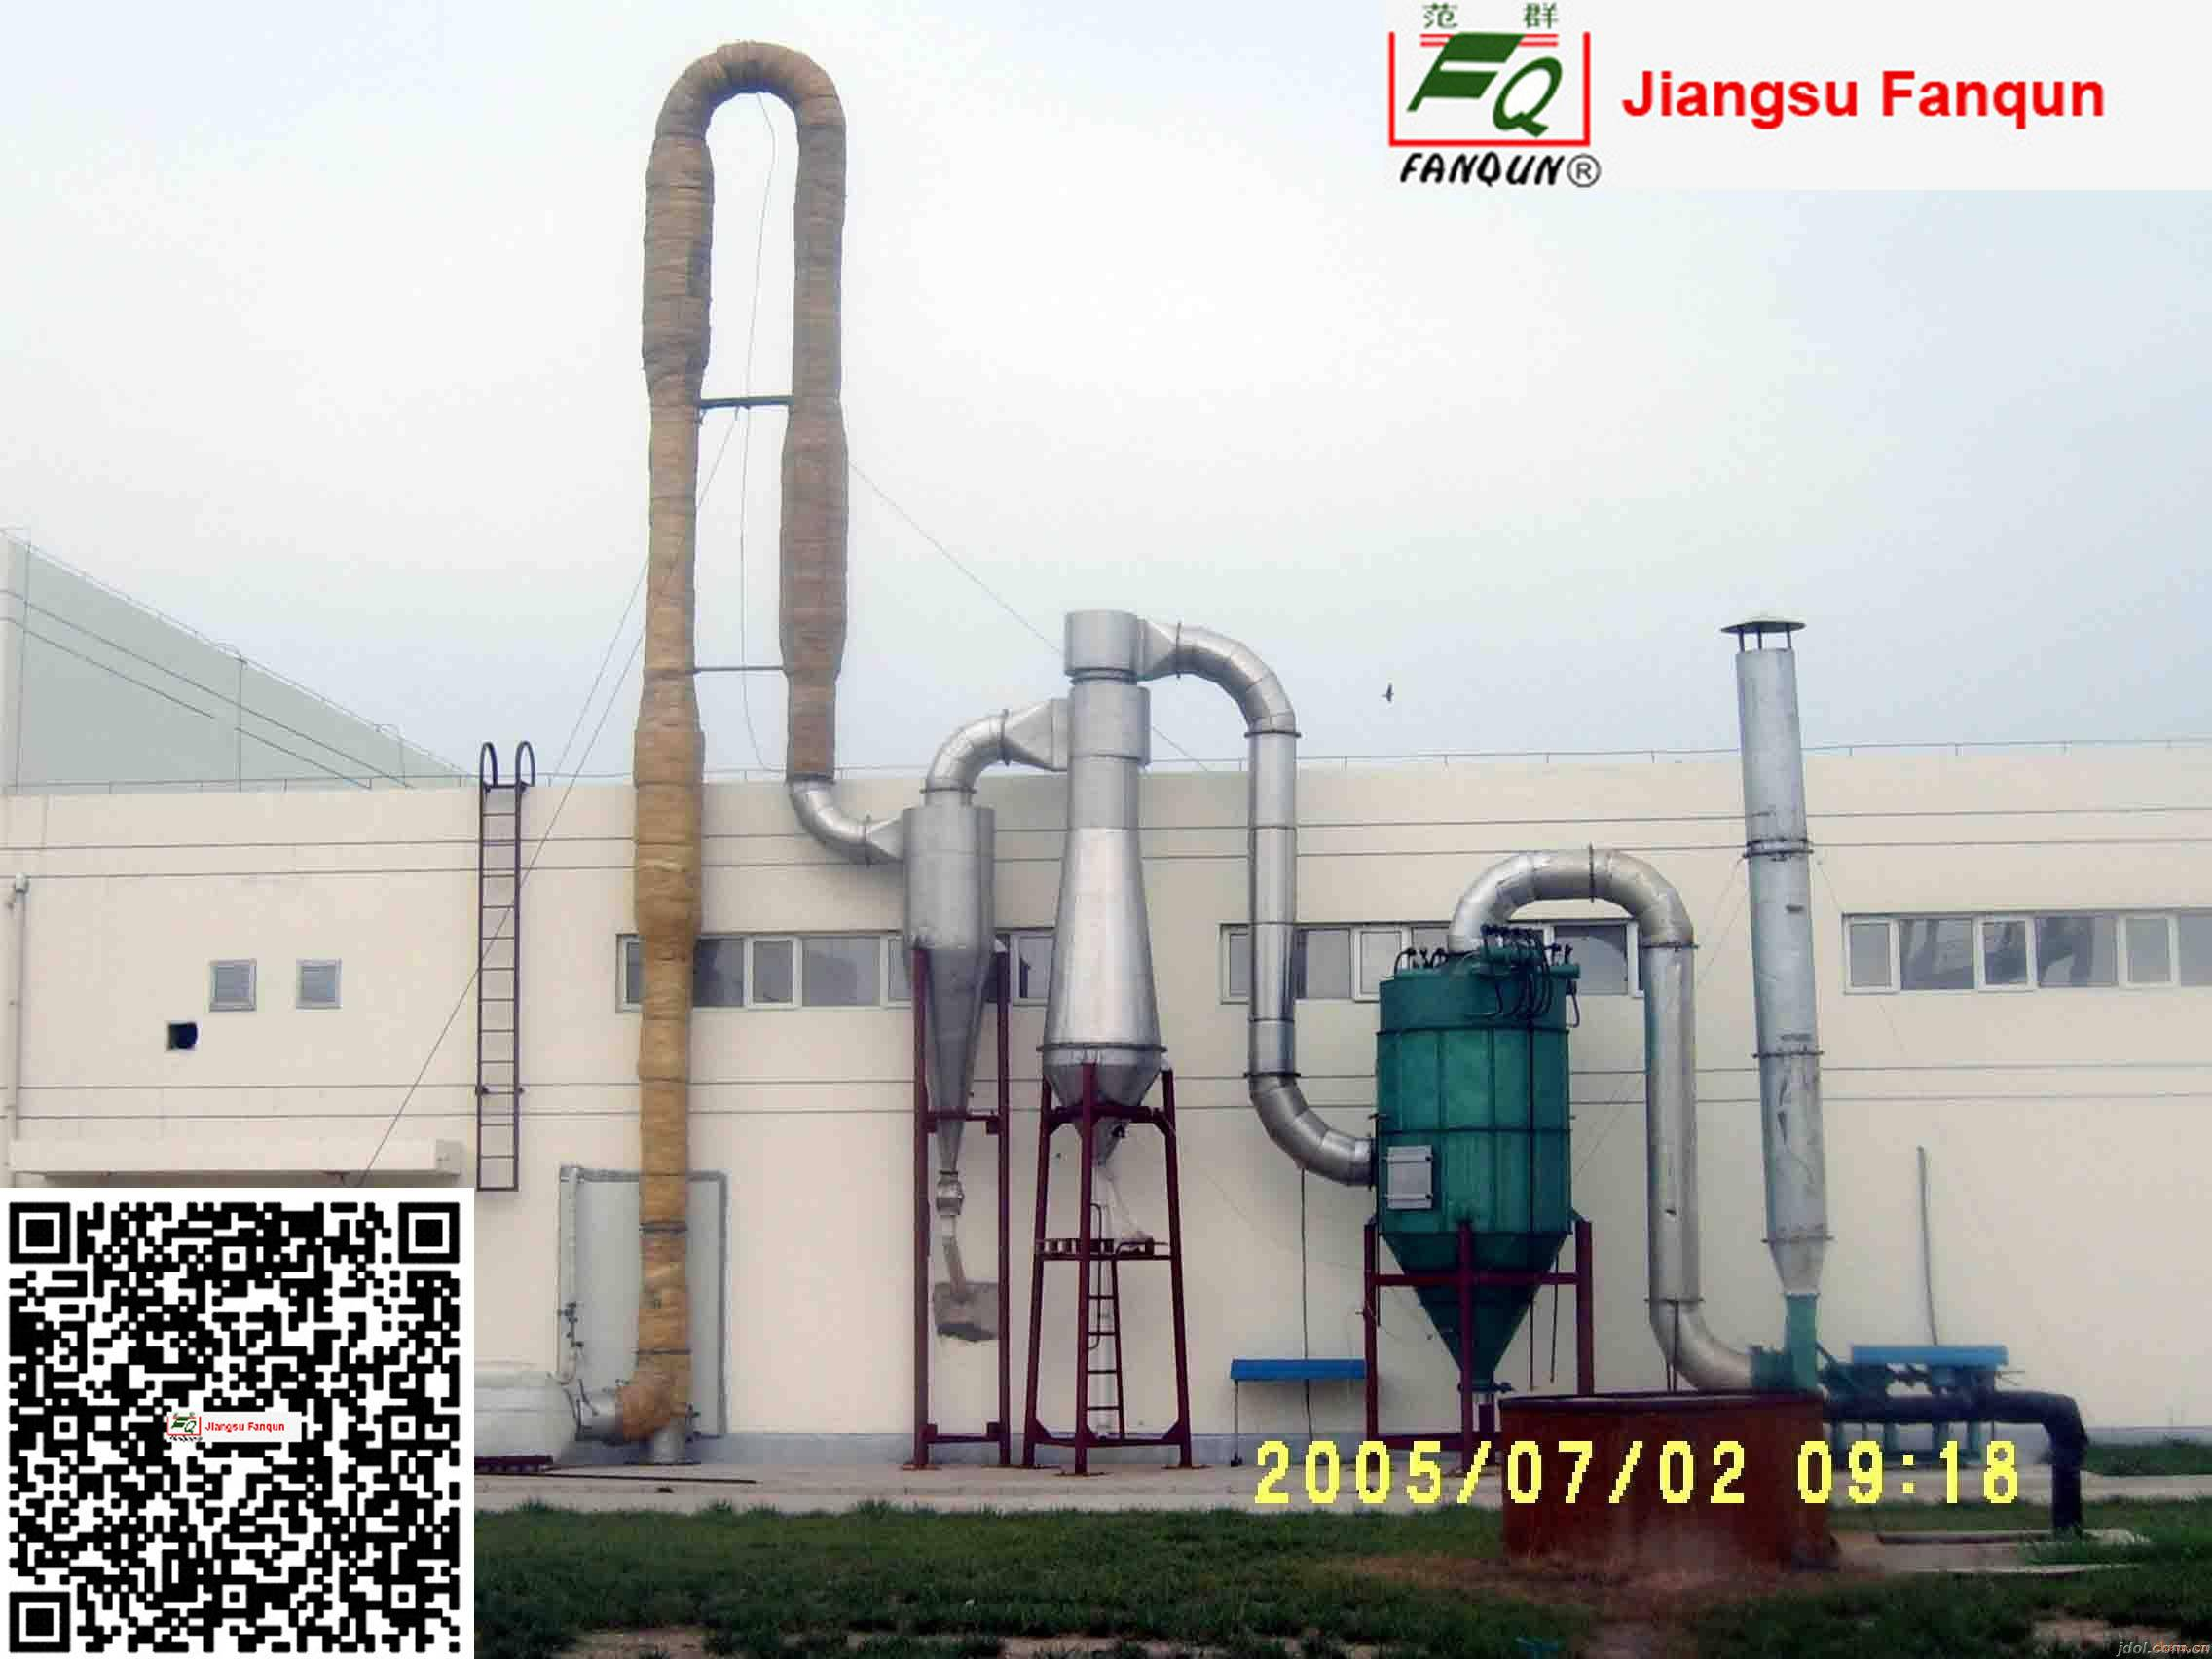 Jiangsu Fanqun QG FG Air Stream Dryer